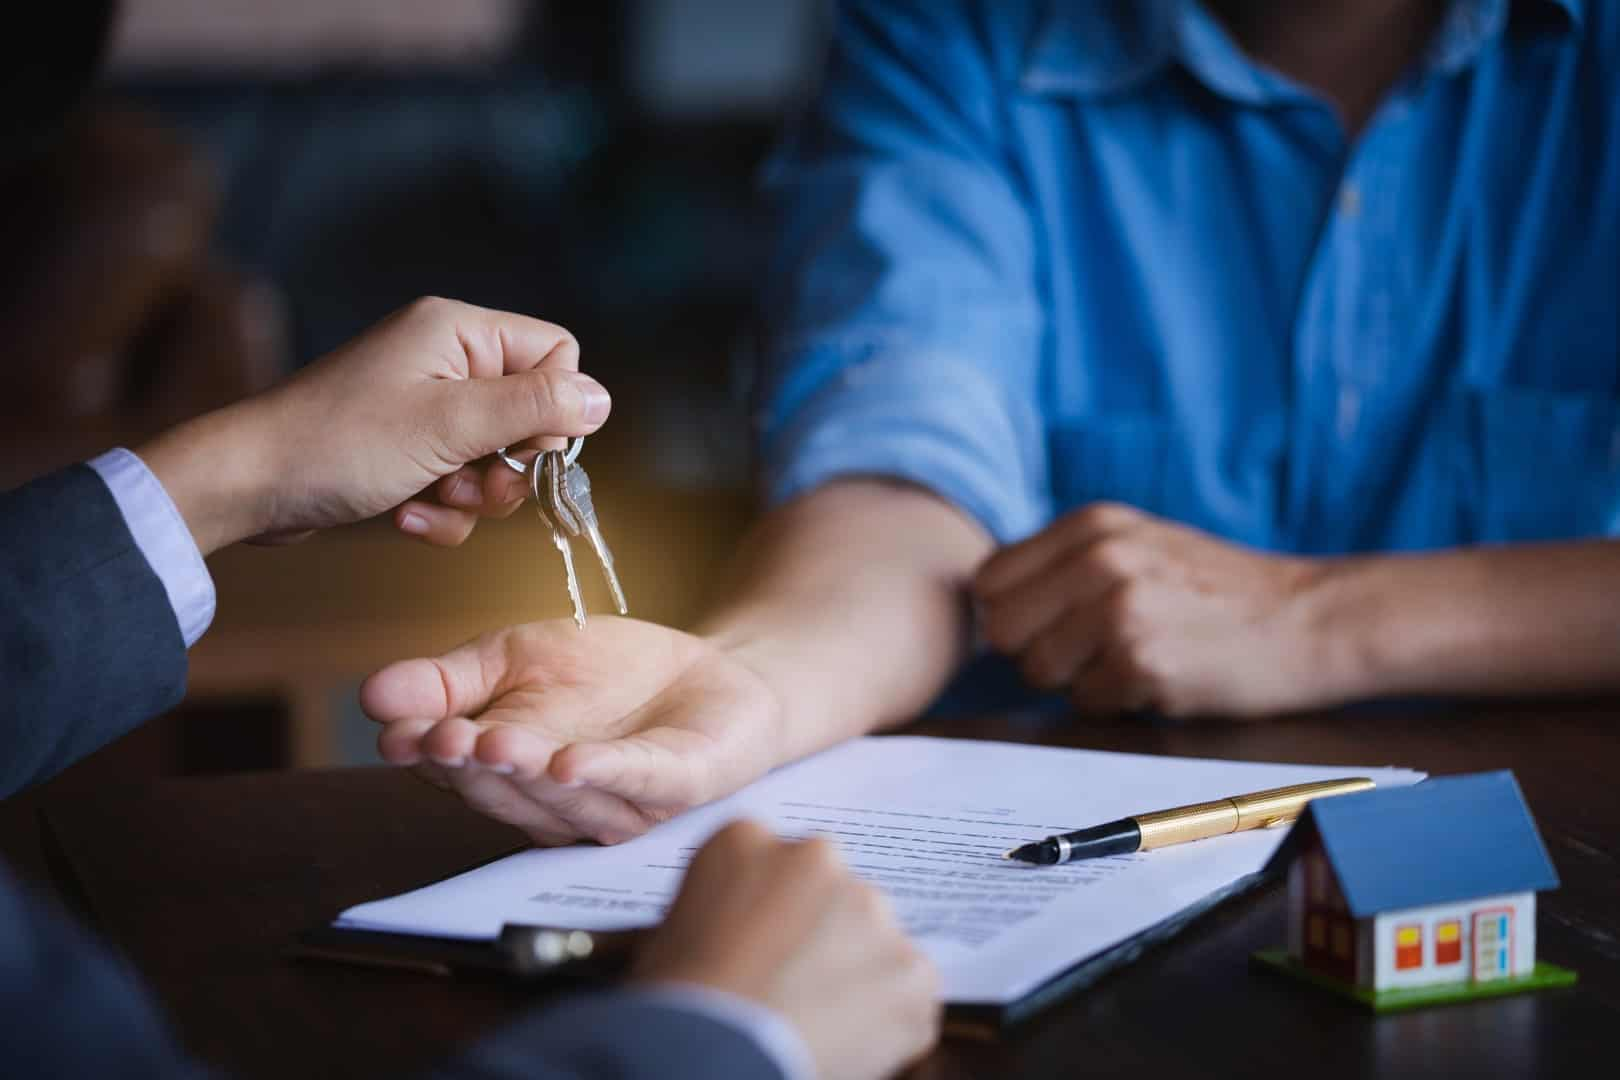 Real estate agent giving keys to new property owners after signing contract,concept agreement and Real estate concept.real estate, moving home or renting property.